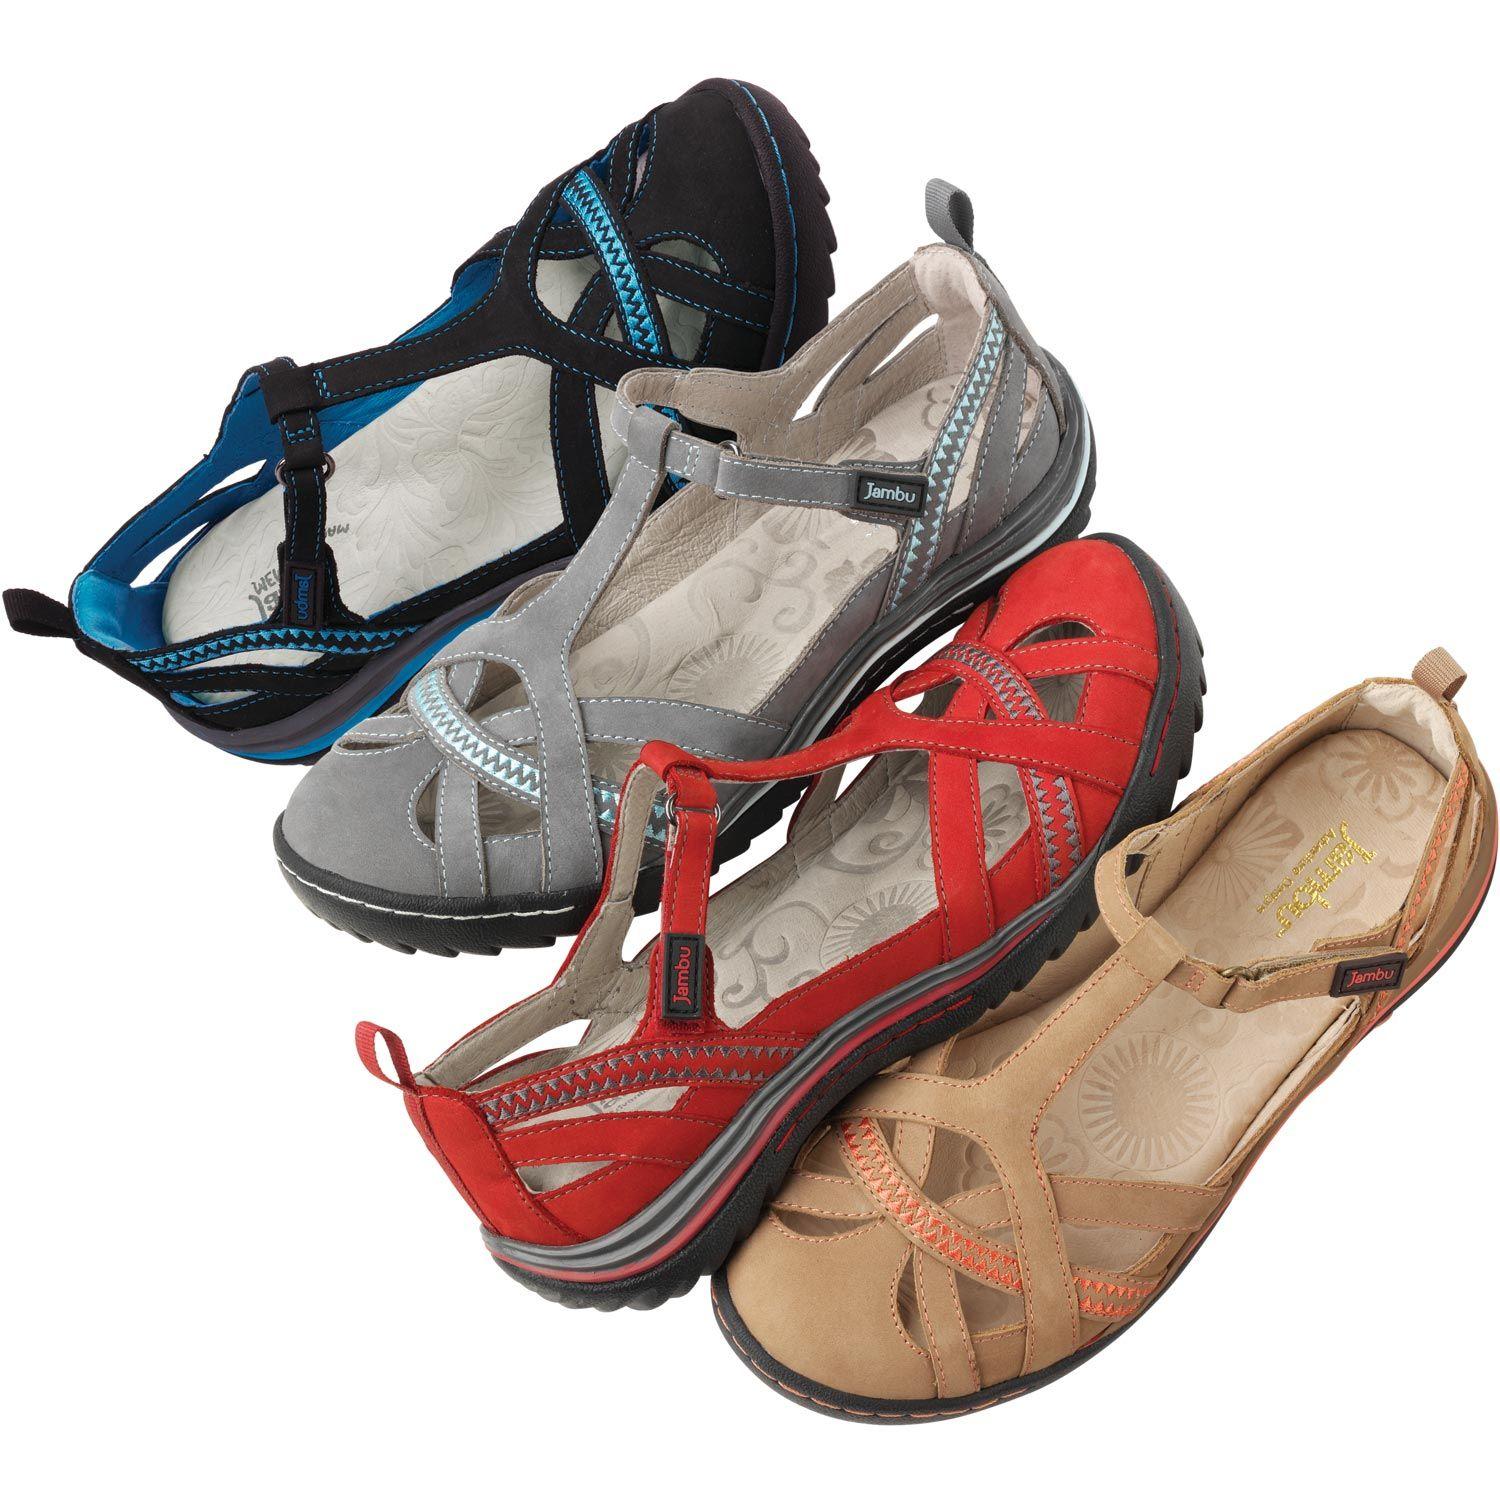 Jambu Charley Sandal gives you the function, durability and casual good looks to waltz through summer in complete comfort.